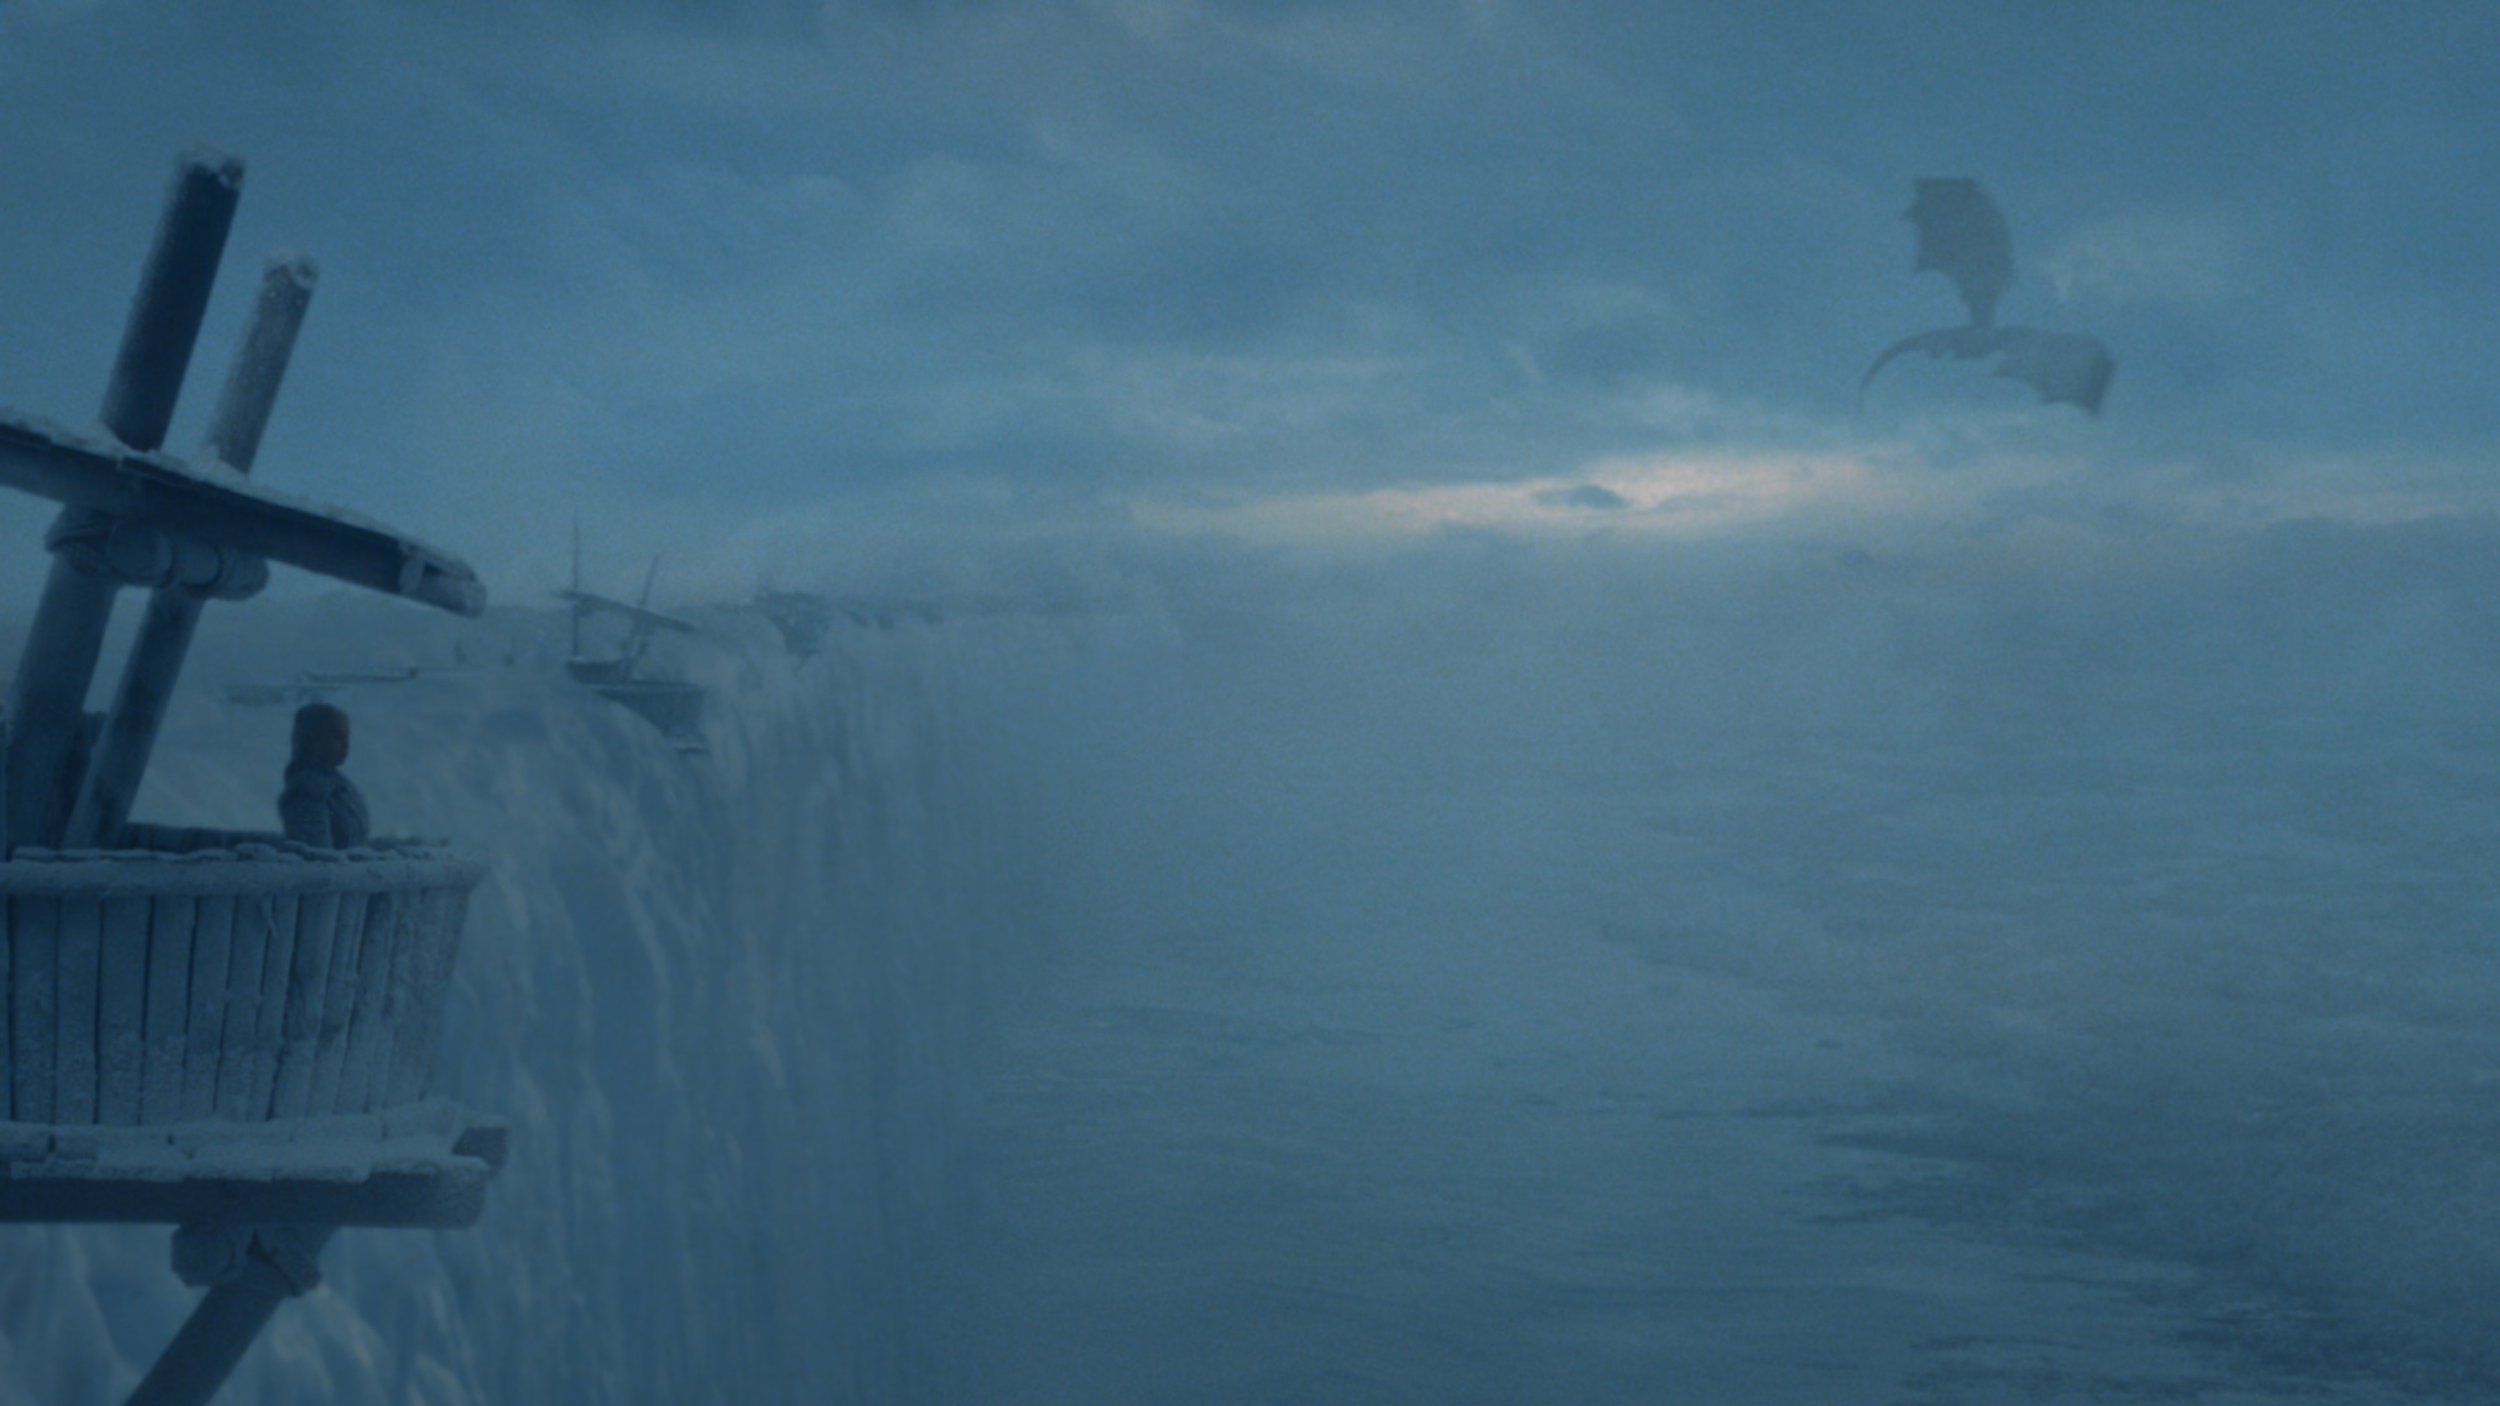 Game of Thrones - Beyond the Wall - dragon